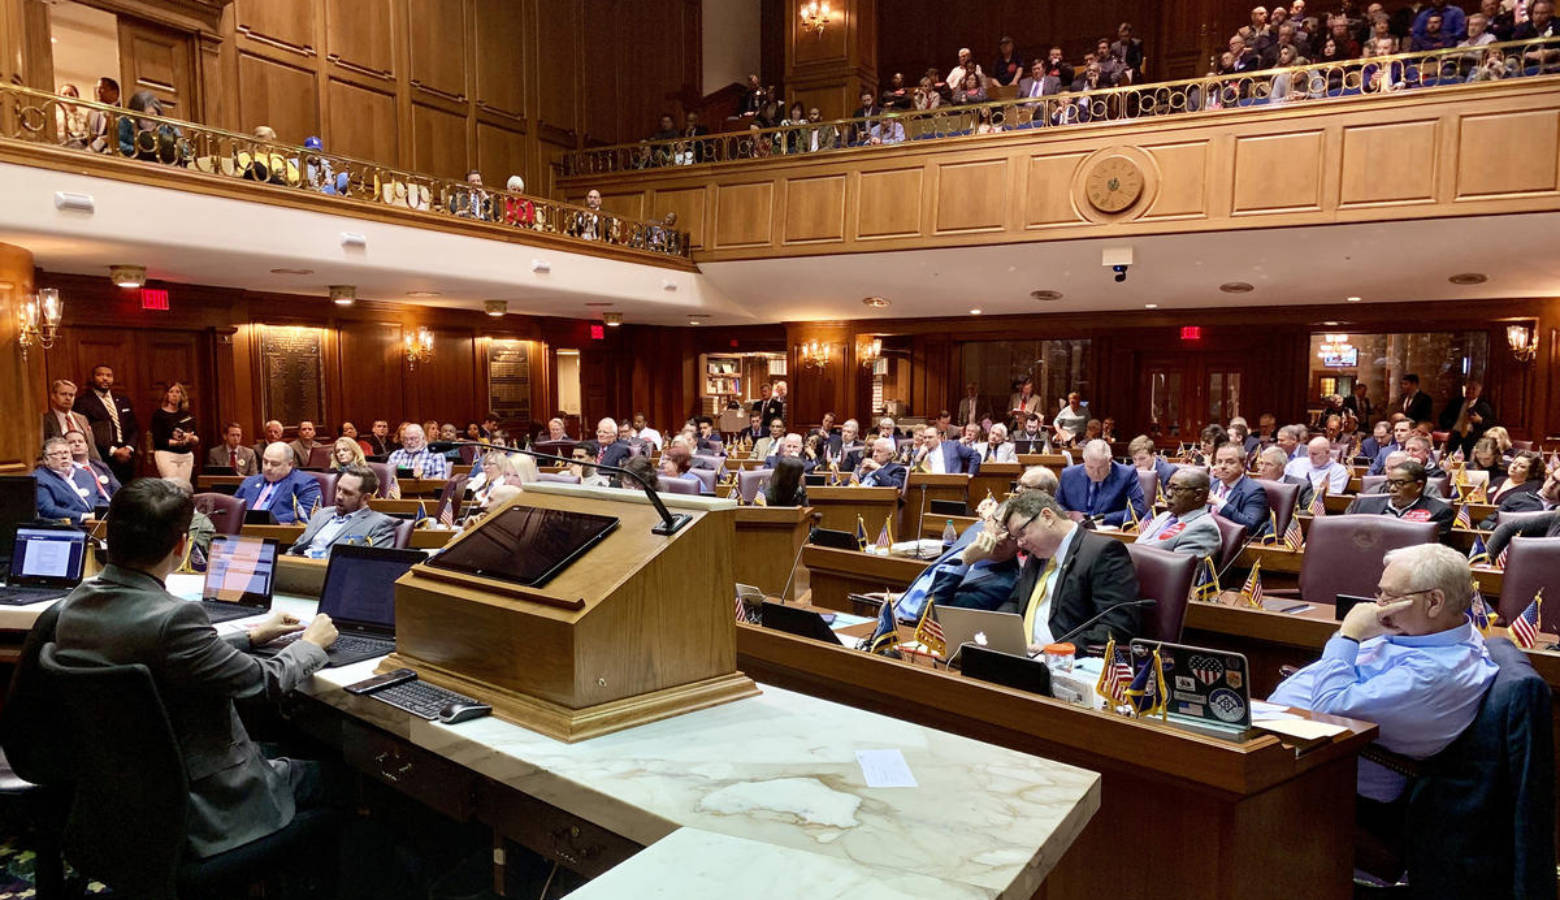 The House Public Policy Committee considers testimony on a major gaming bill. (Brandon Smith/IPB News)